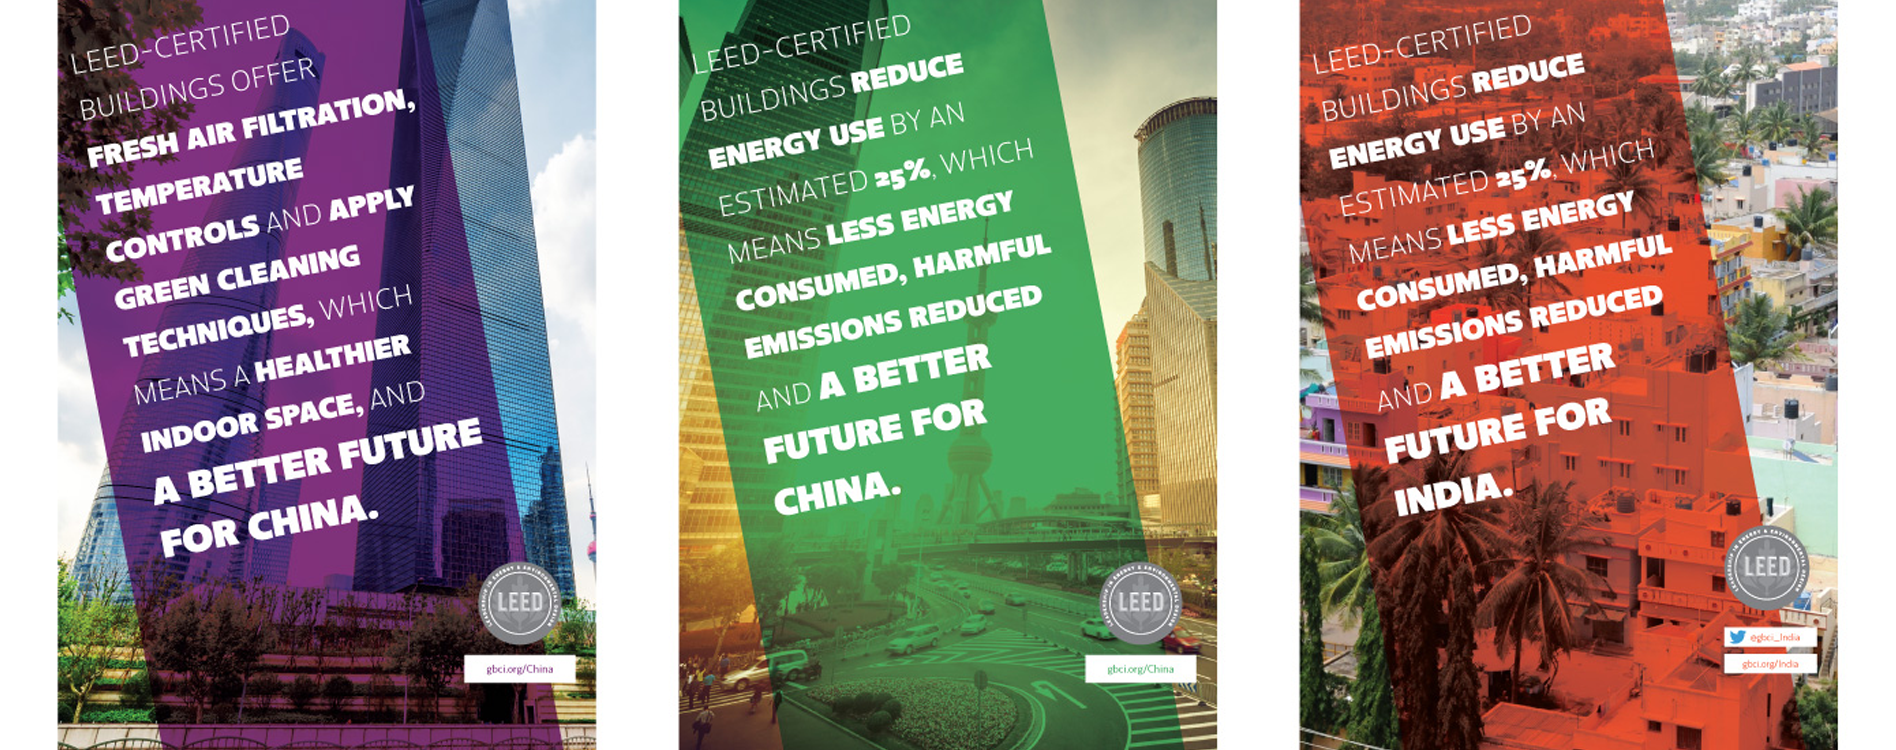 Designing LEED print ads for international audiences